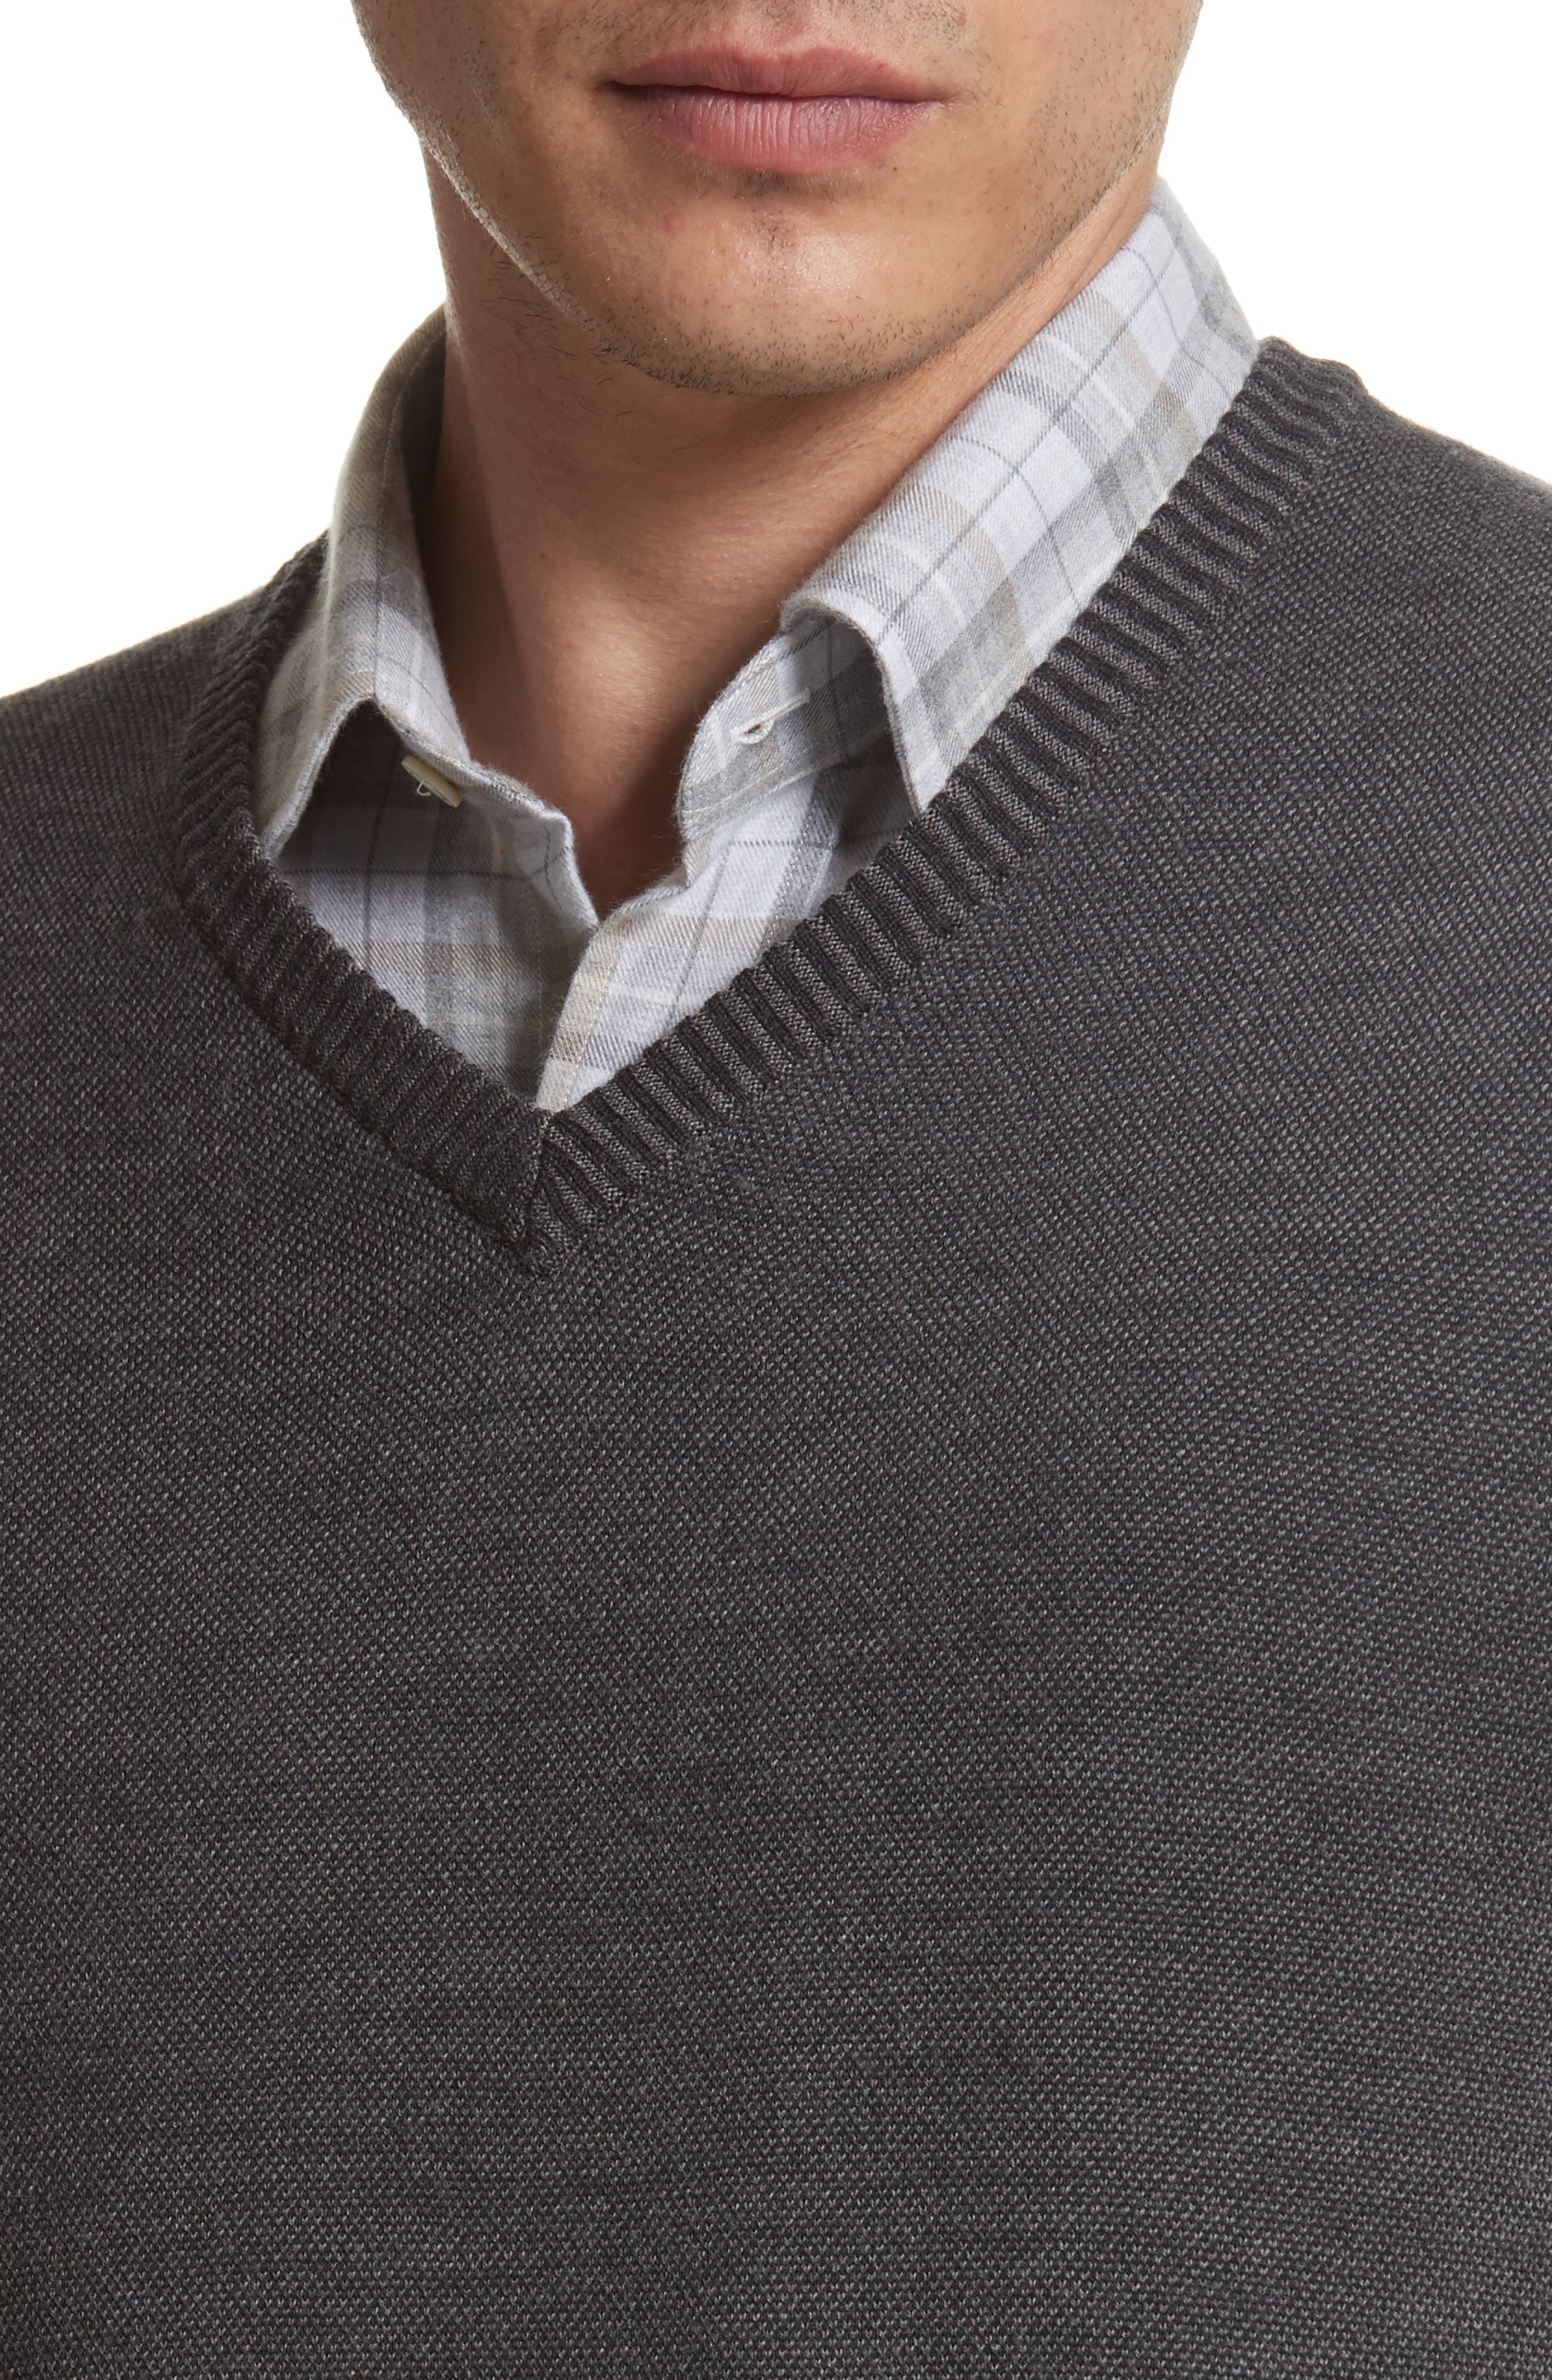 Regular Fit Wool Sweater,                             Alternate thumbnail 4, color,                             Charcoal